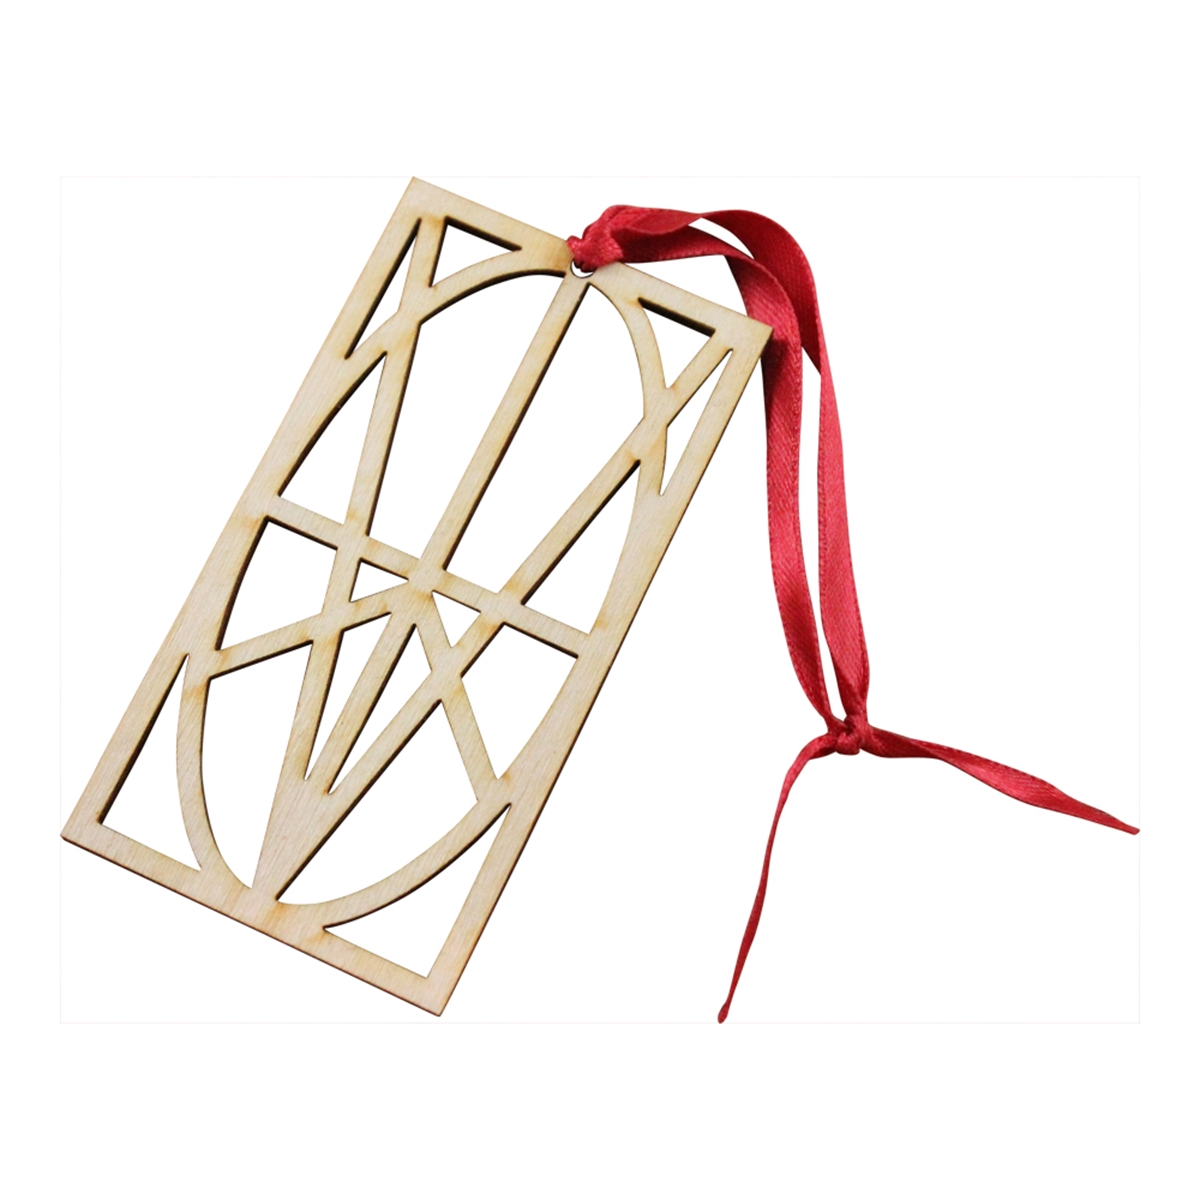 Picture of Zymbol Ornament - Wood